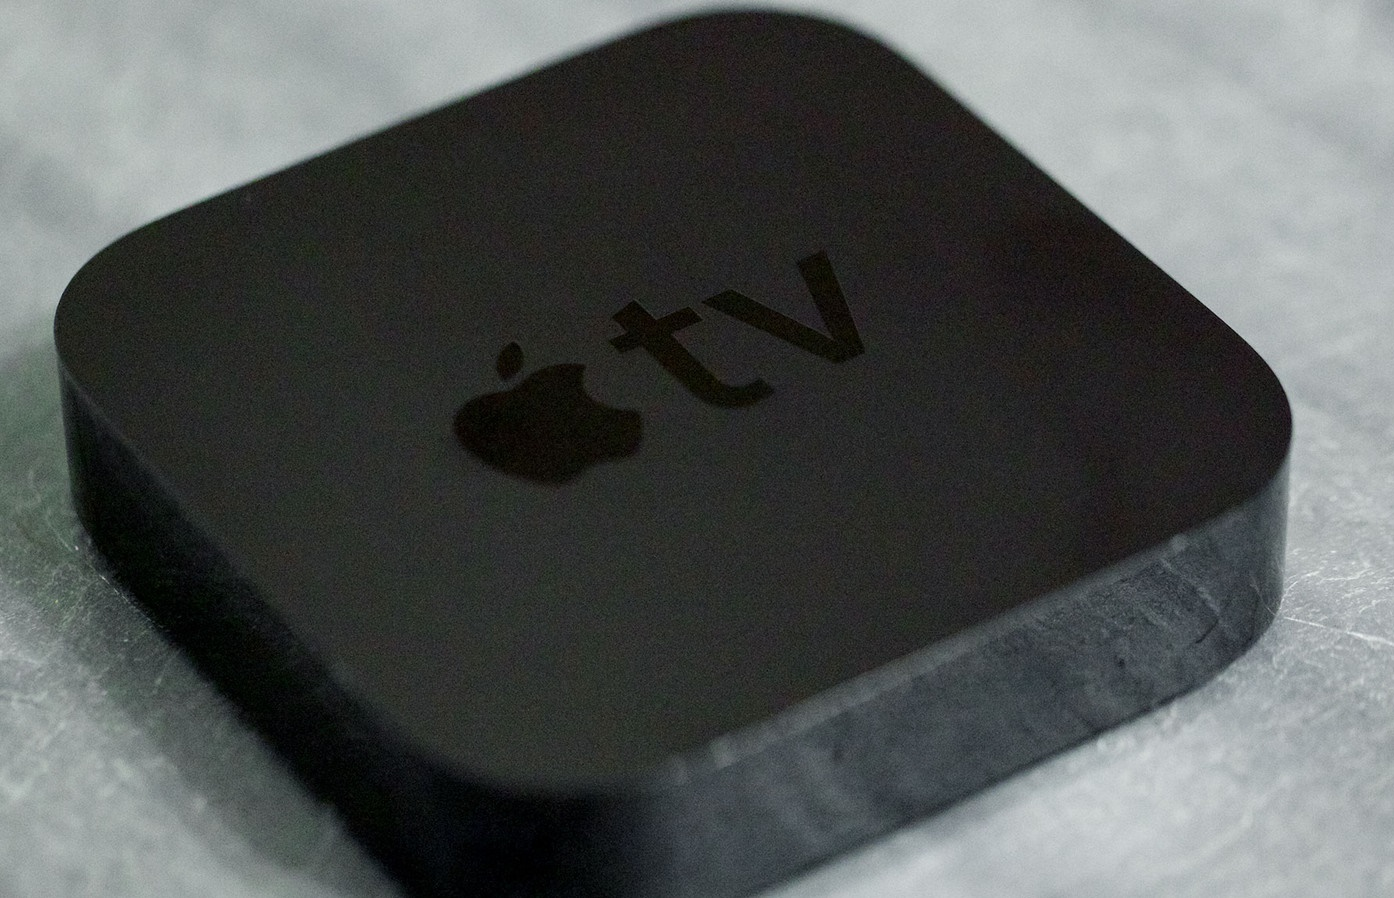 New Apple TV comes with A8 chip, 16 GB option and no 4K support